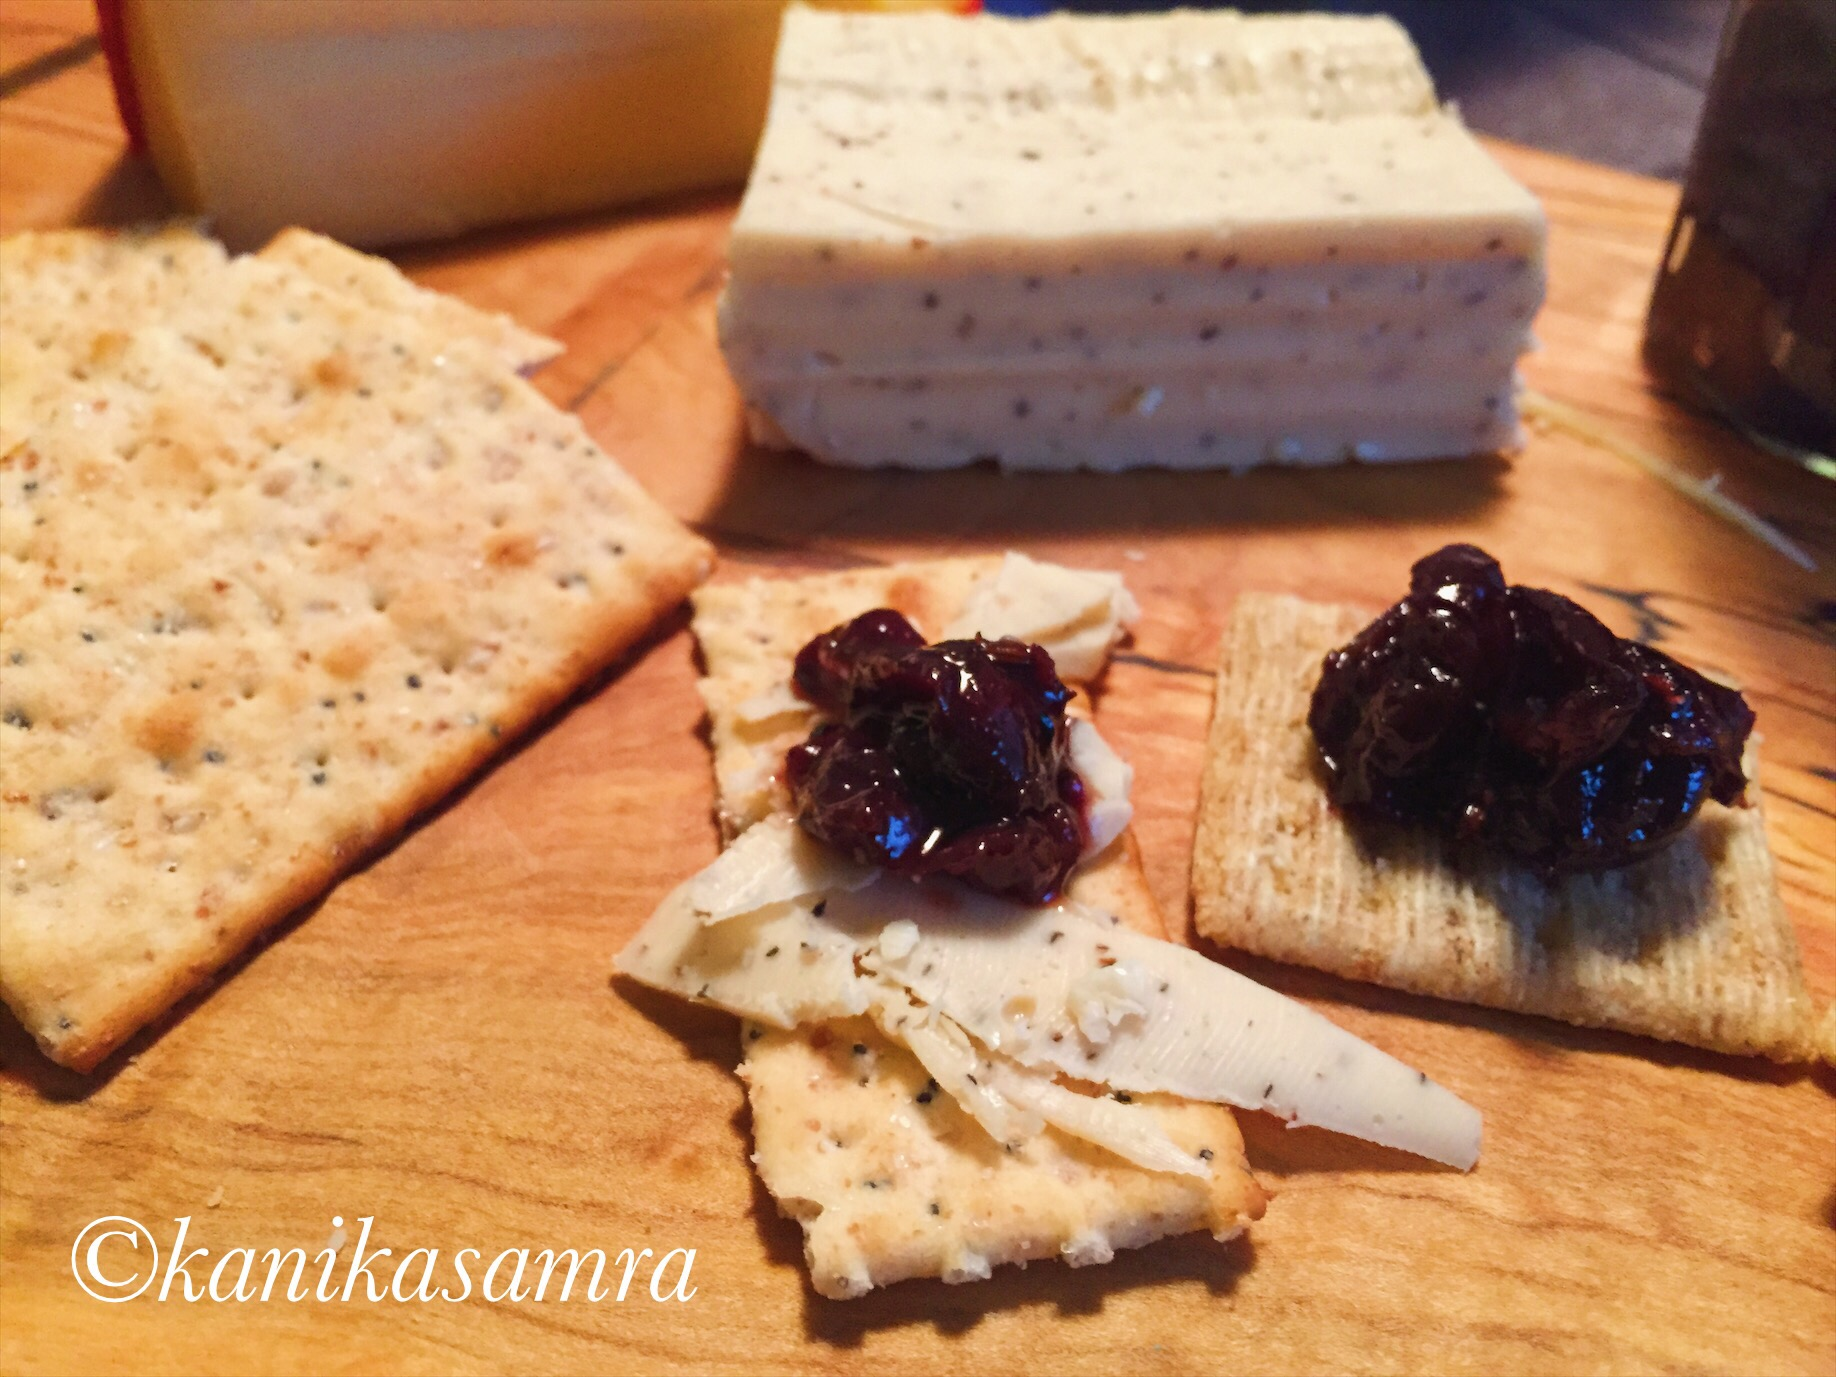 Cracker with Chutney